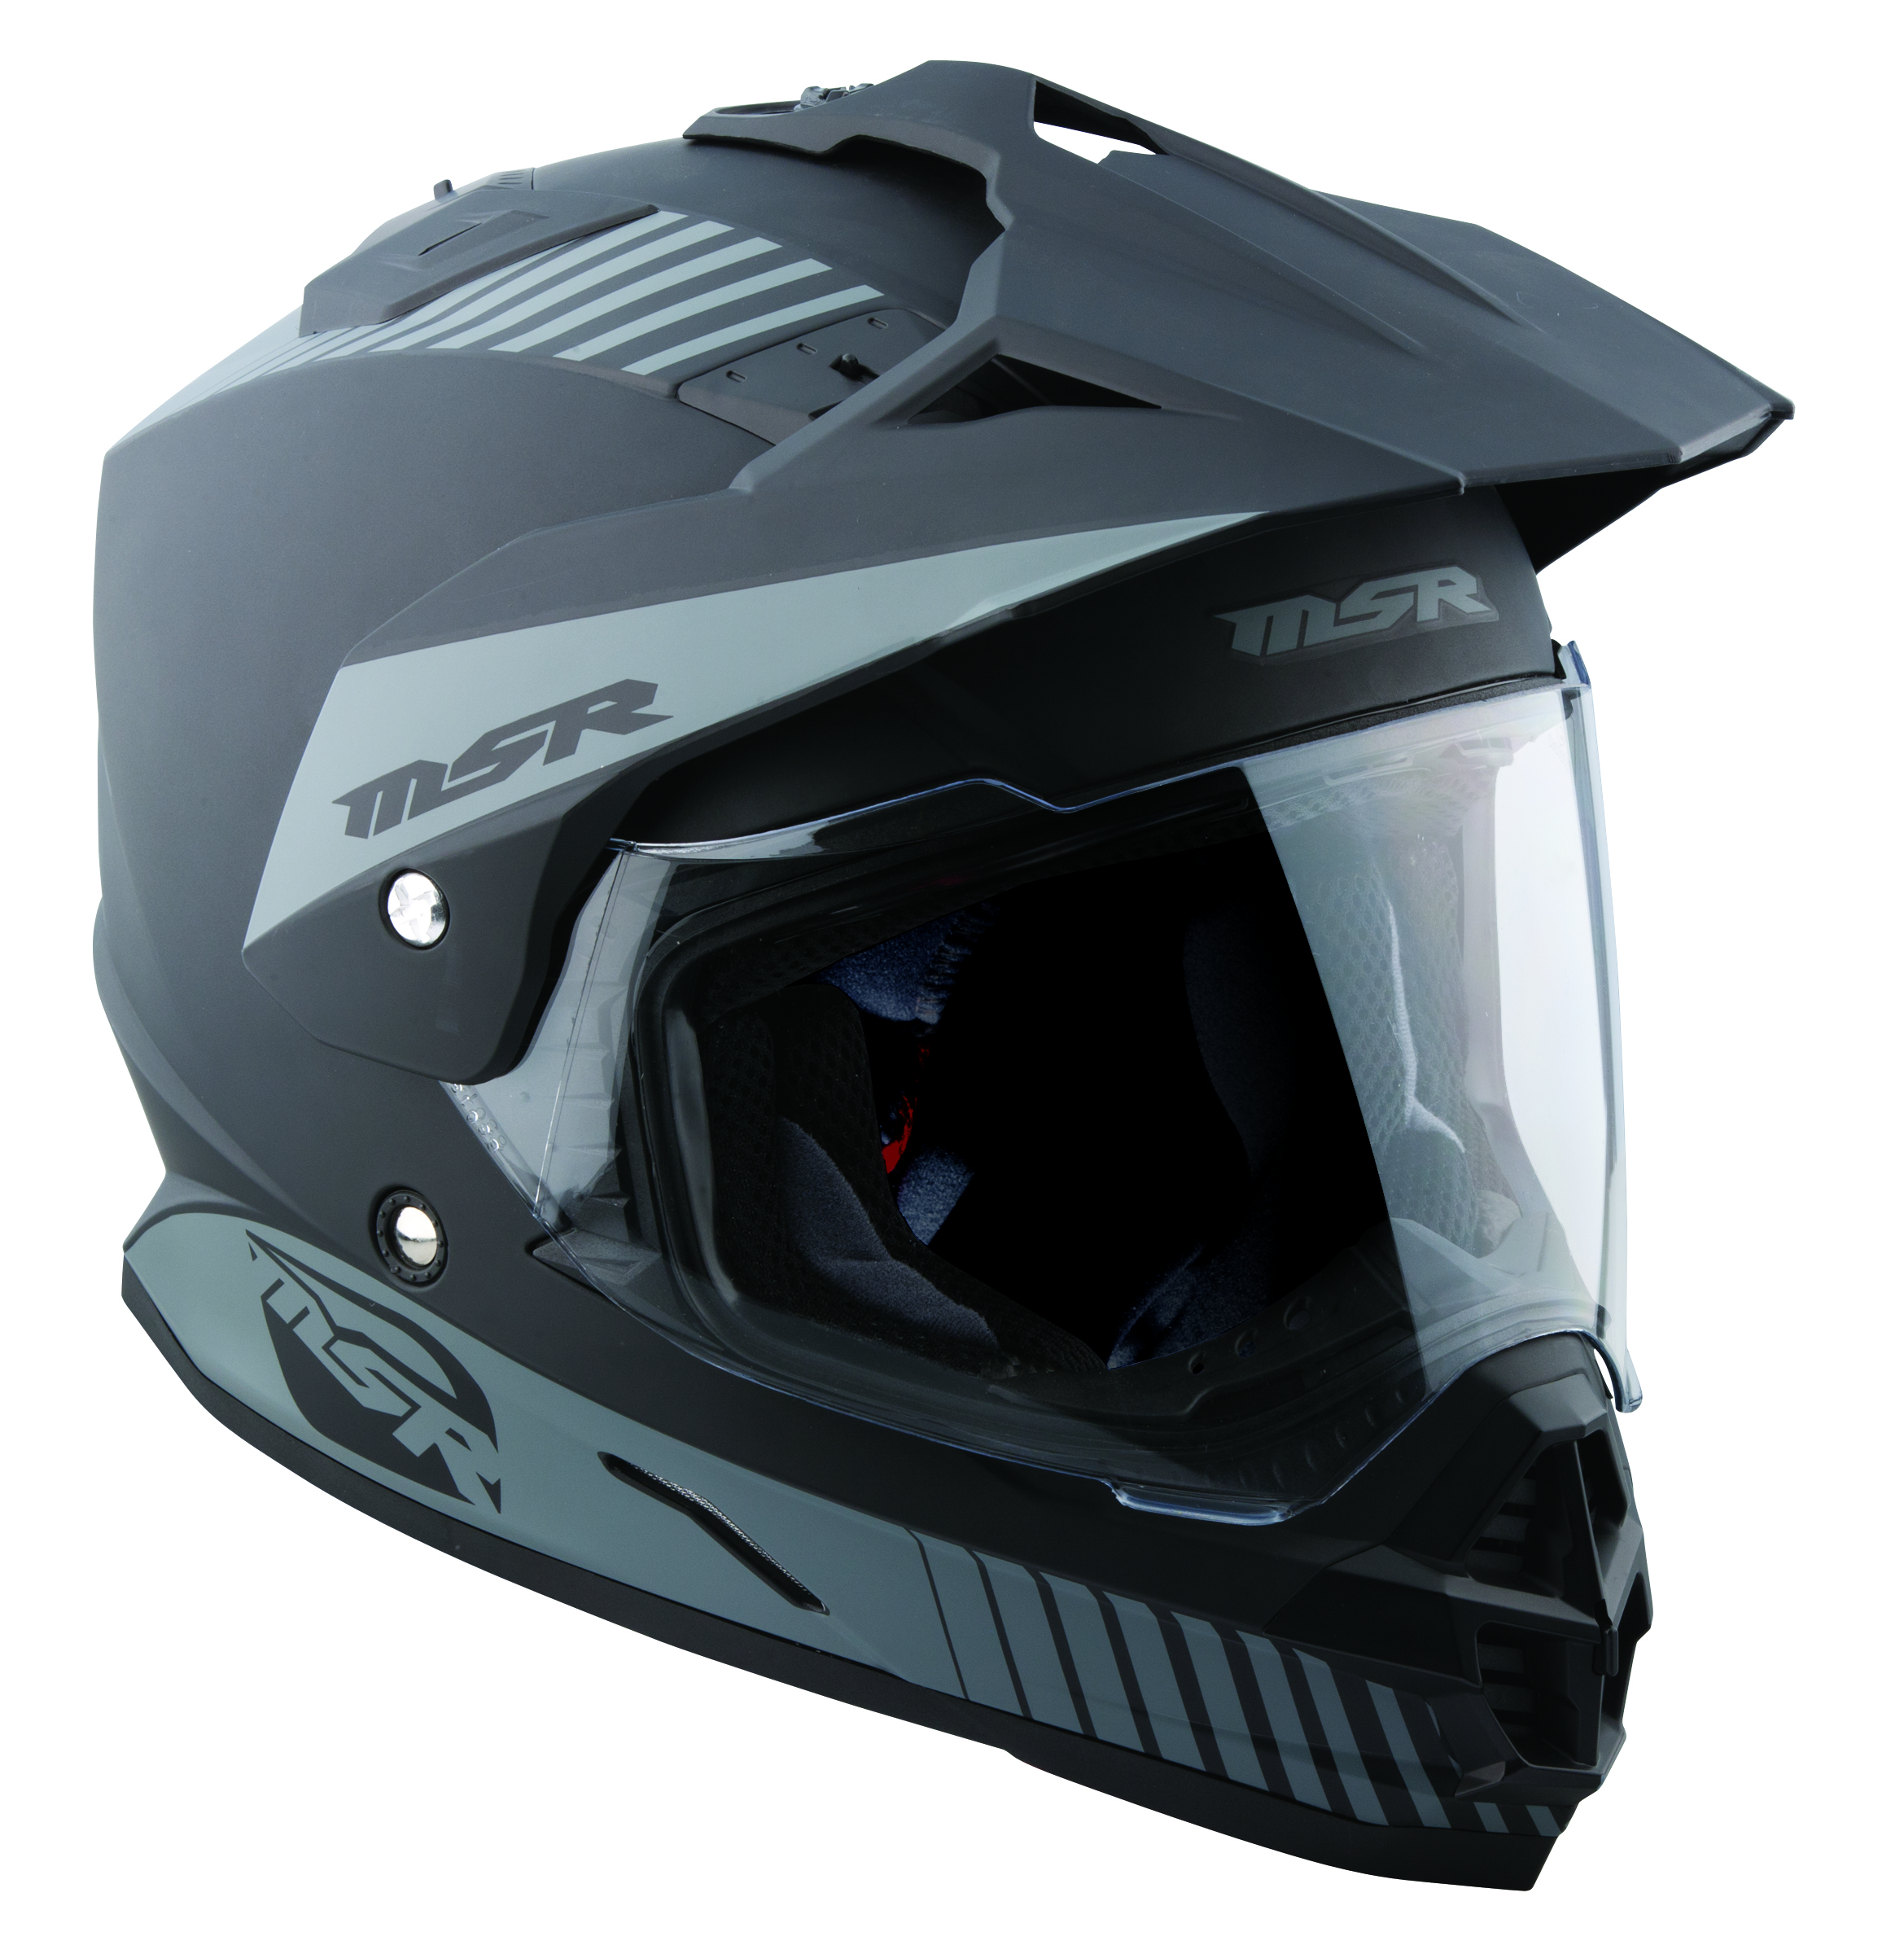 MSR UX32 Face Shield for M13 Xpedition Helmet